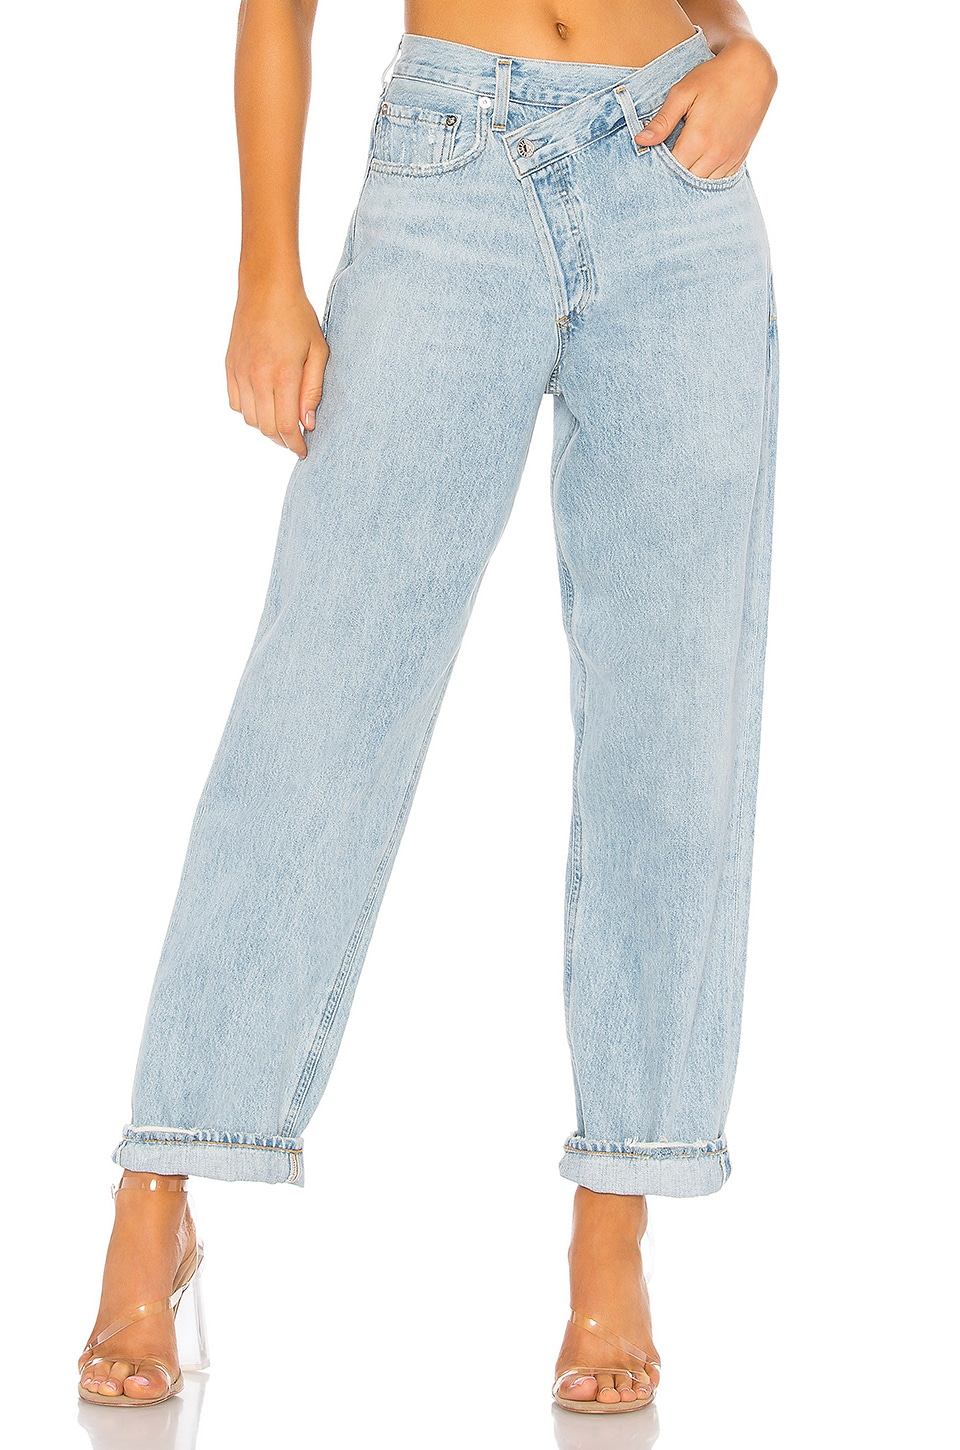 Criss Cross Upsized Jean                     AGOLDE 2